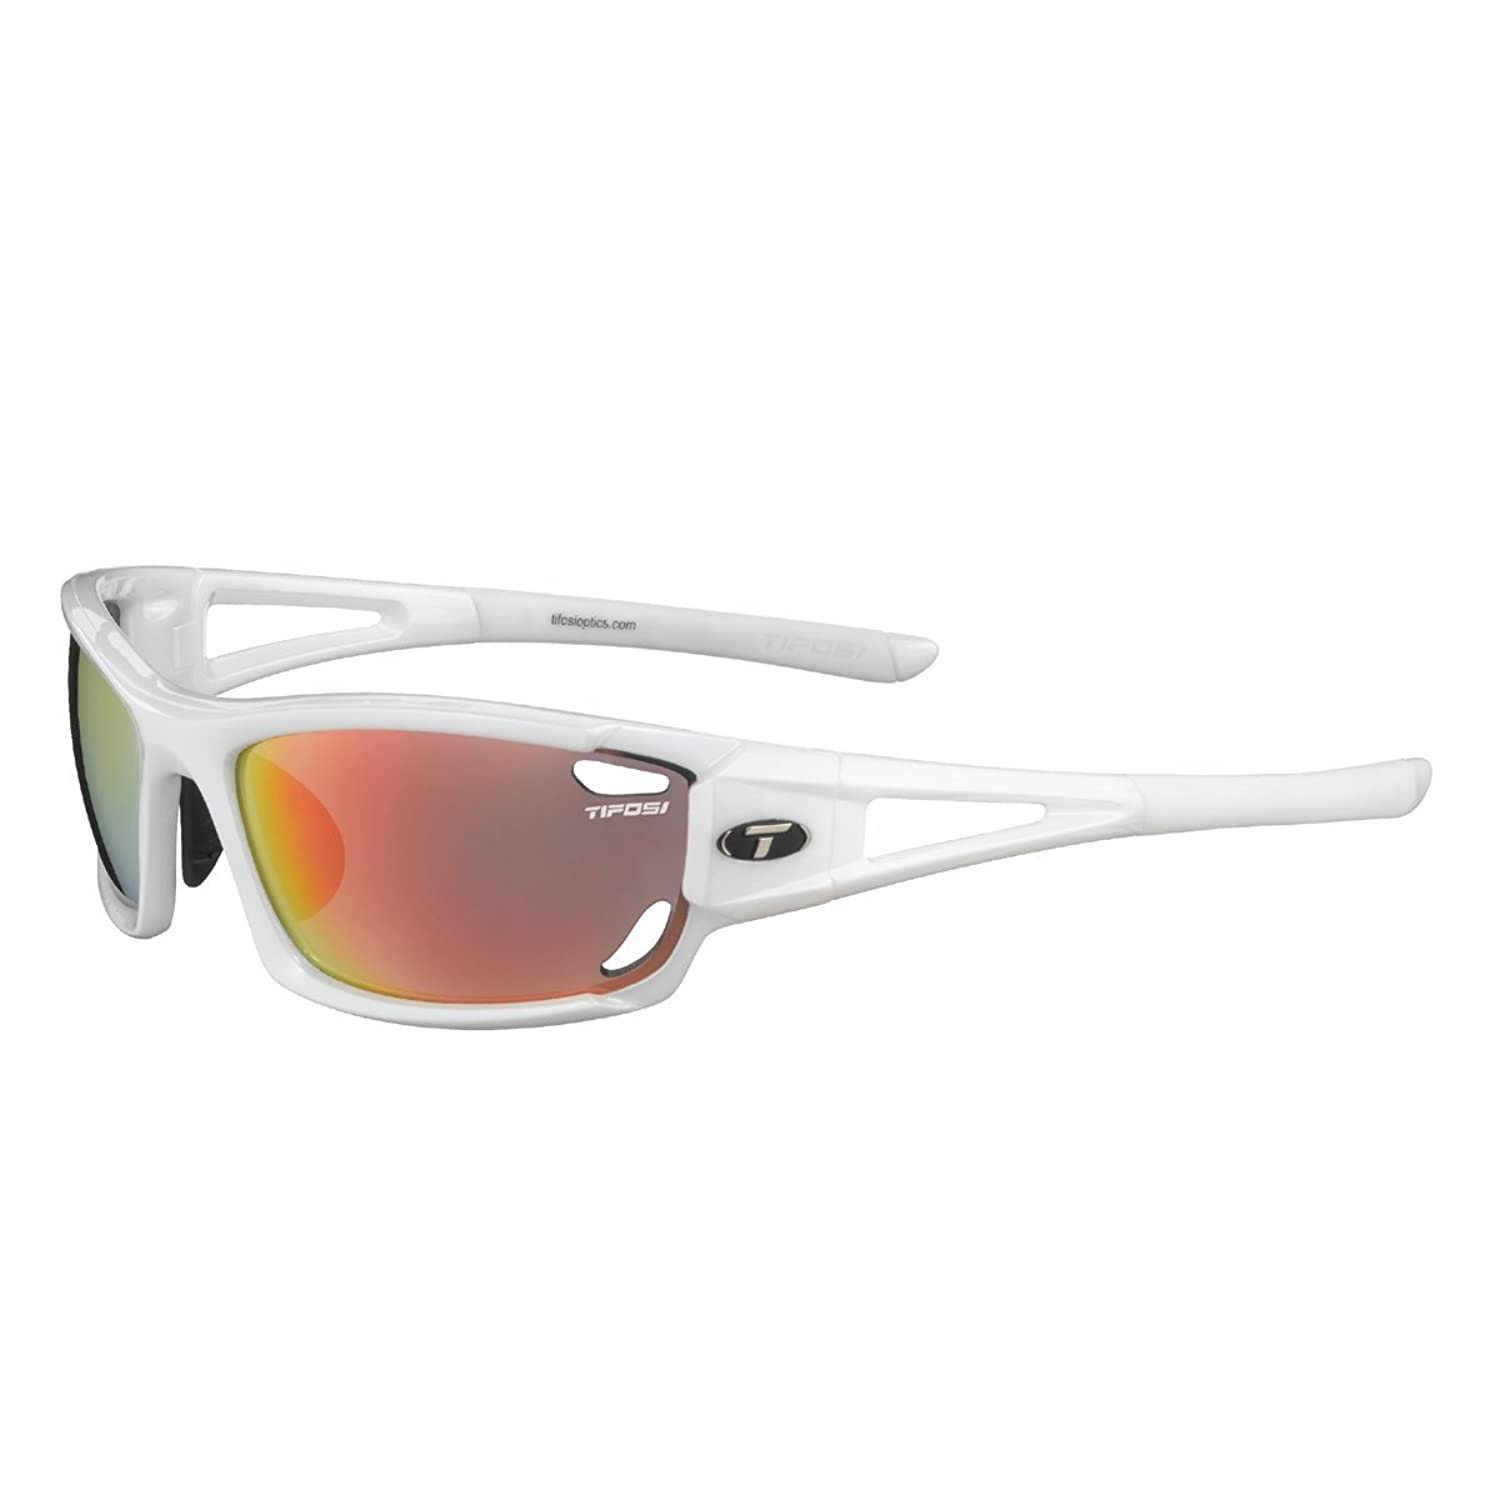 Tifosi Dolomite All Sport Interchangeable Wrap Sunglasses